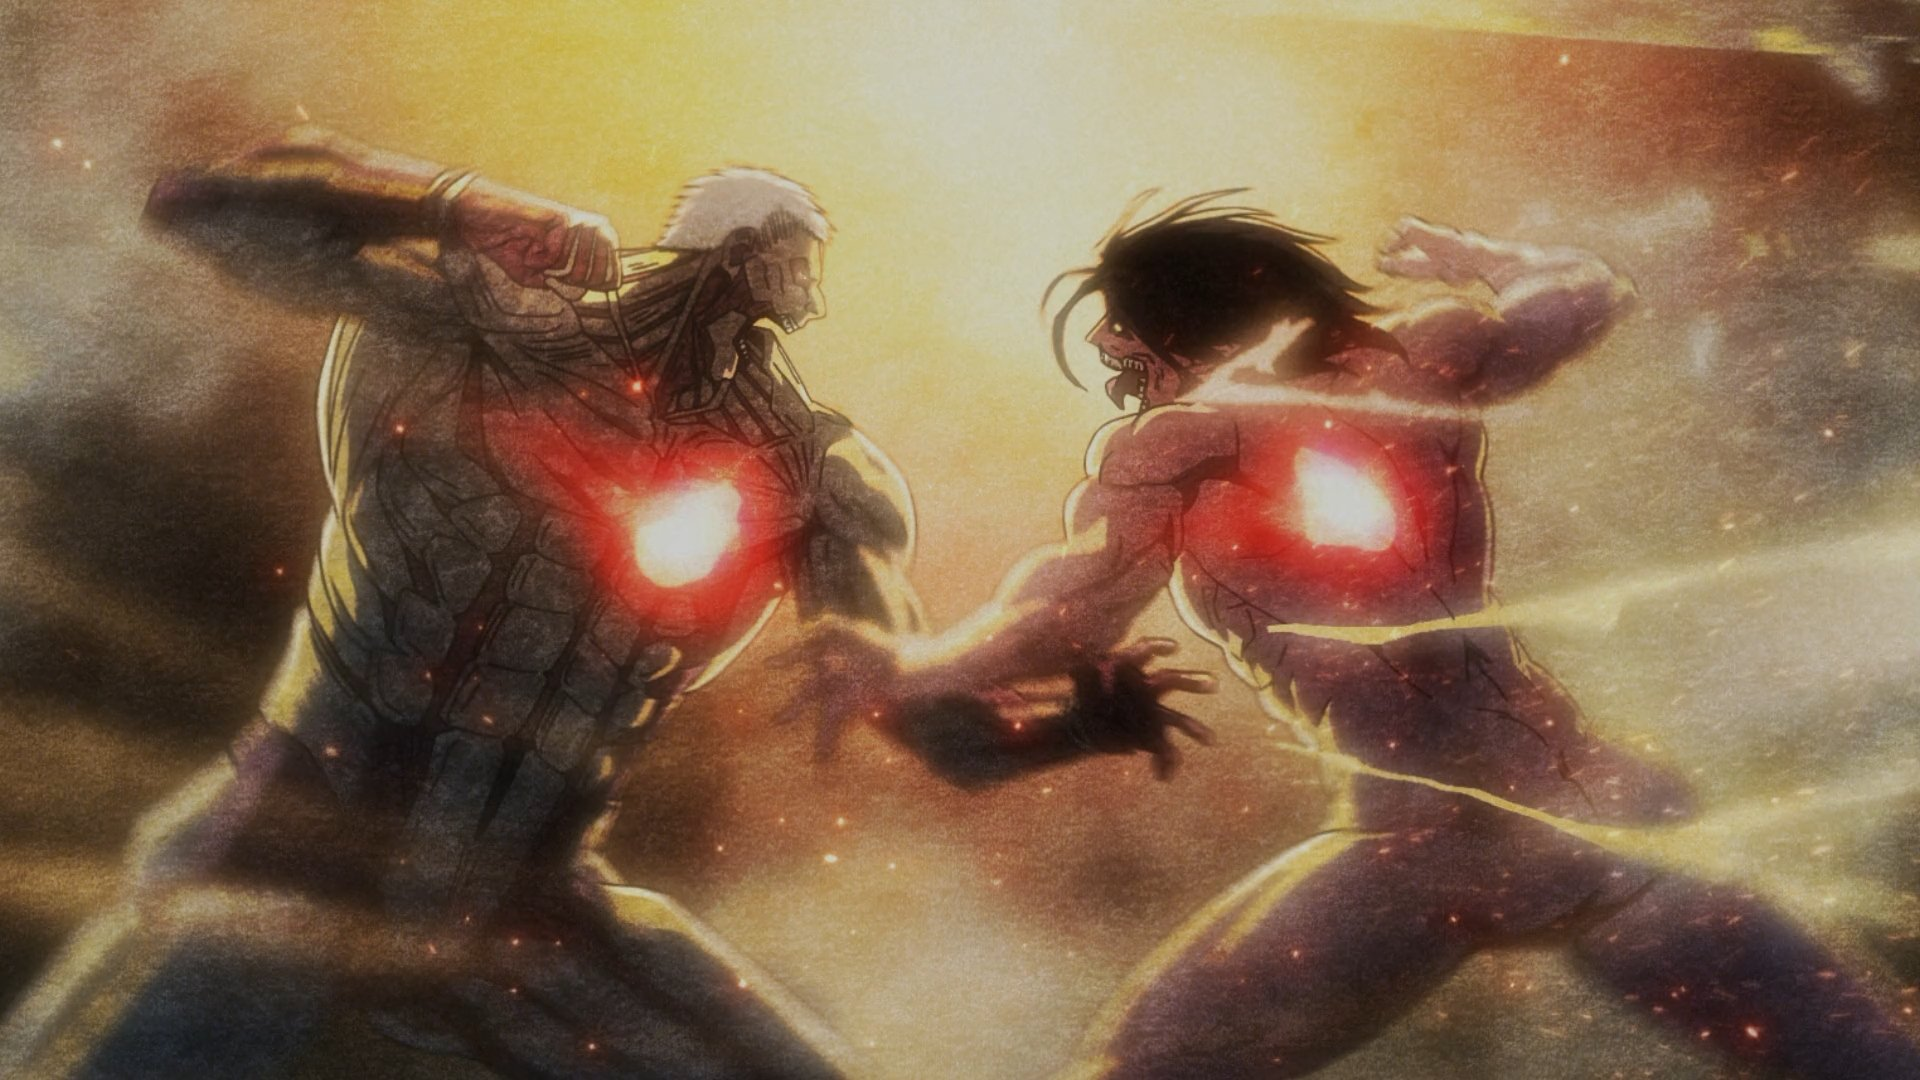 Vs The Armored Titan Hd Wallpaper Background Image 1920x1080 Id 818108 Wallpaper Abyss